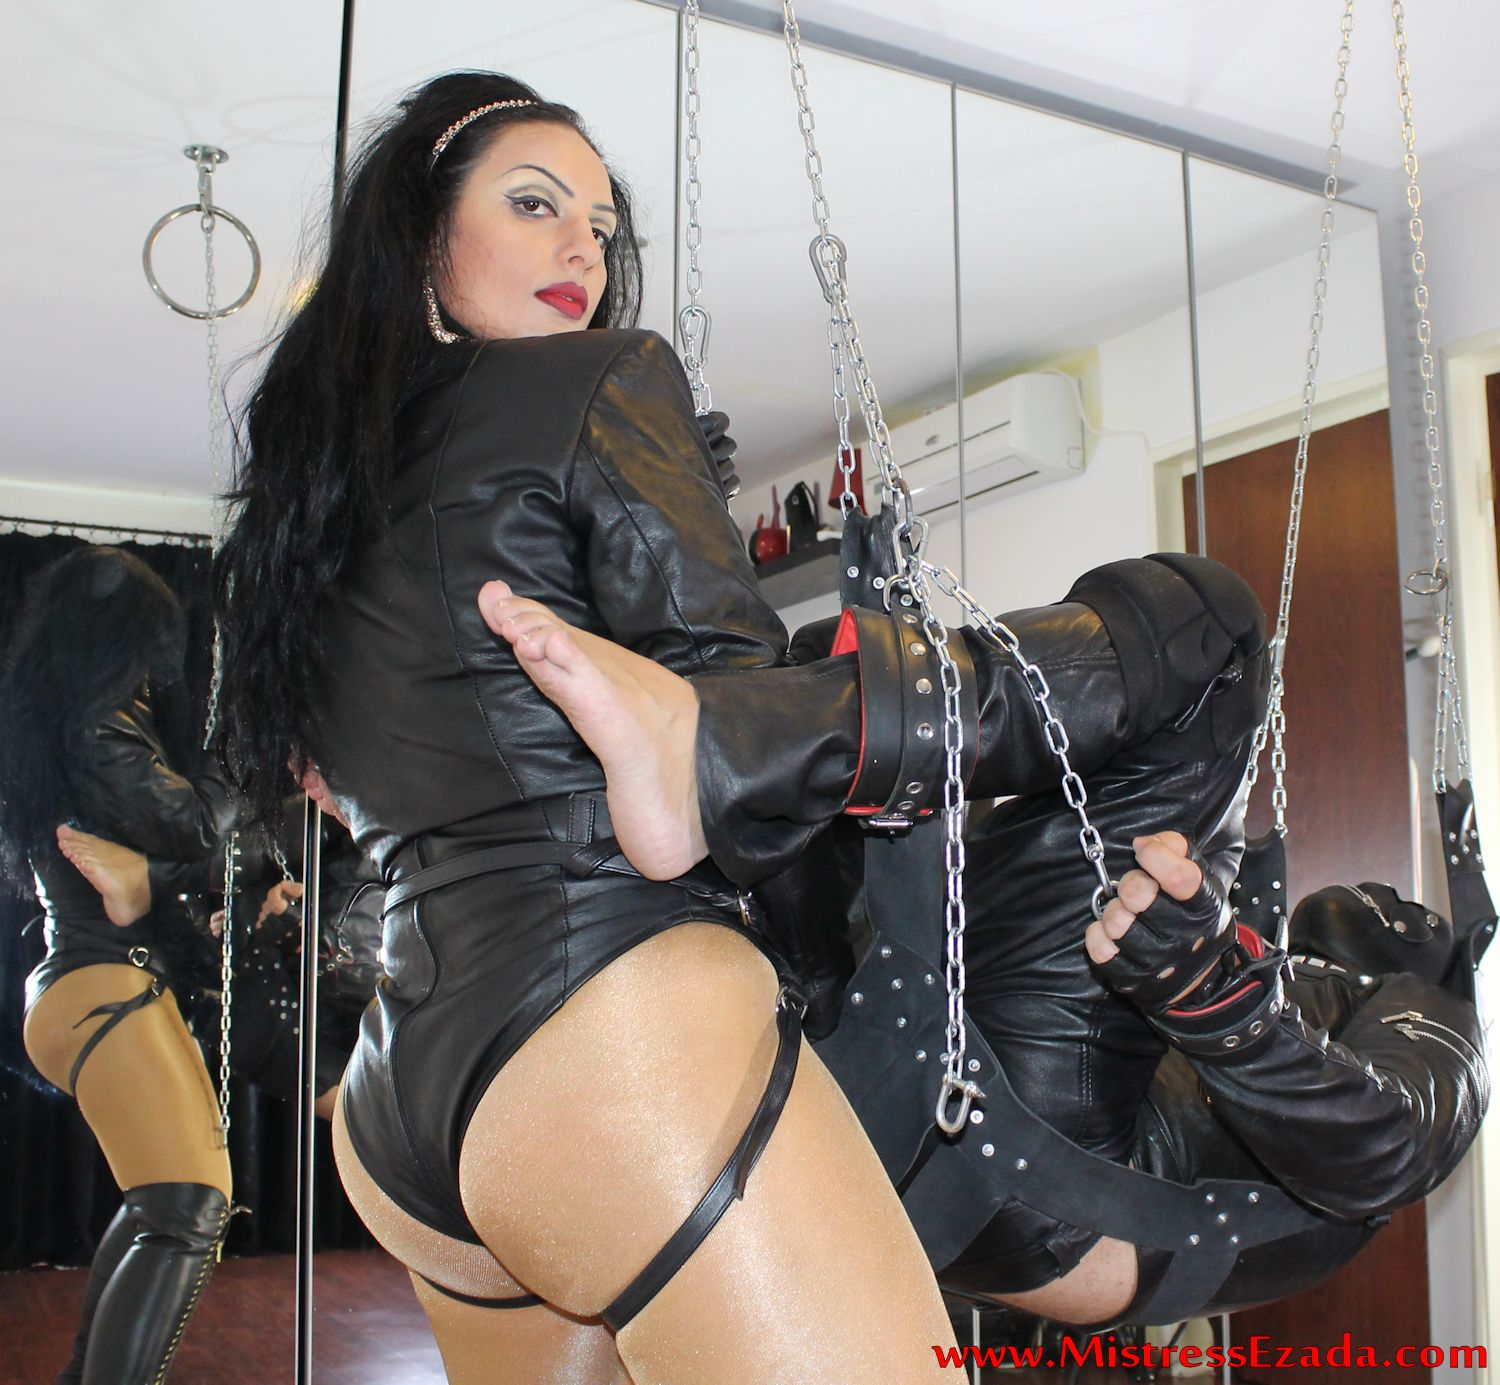 on leather Strap mistress